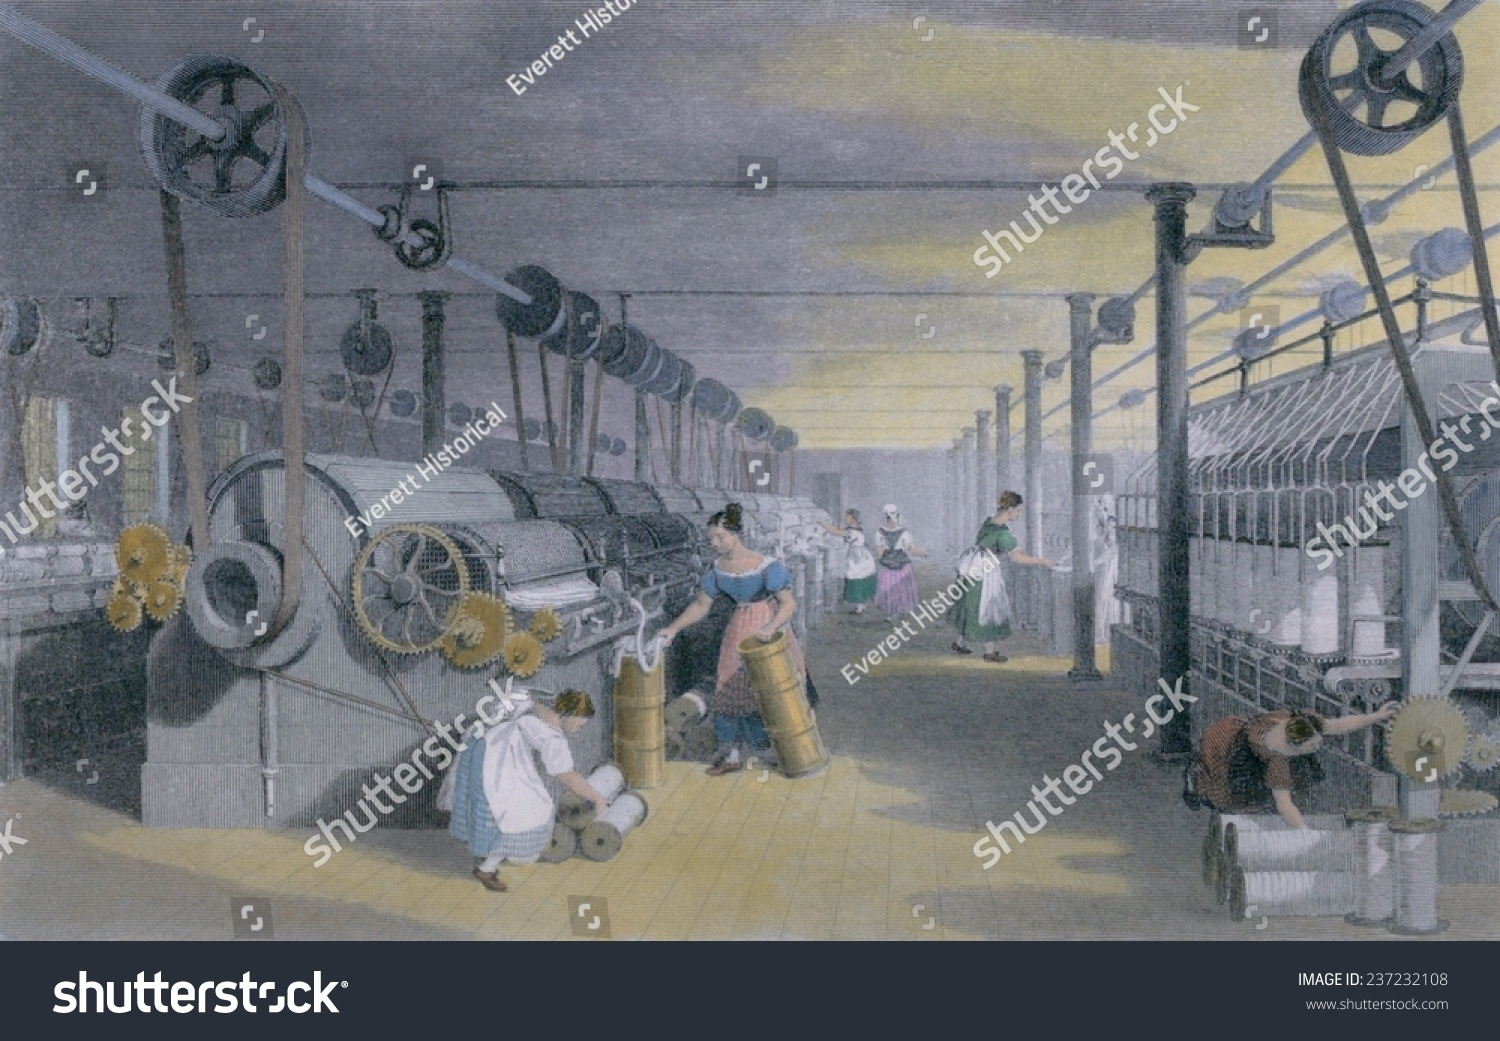 making cotton with a machine